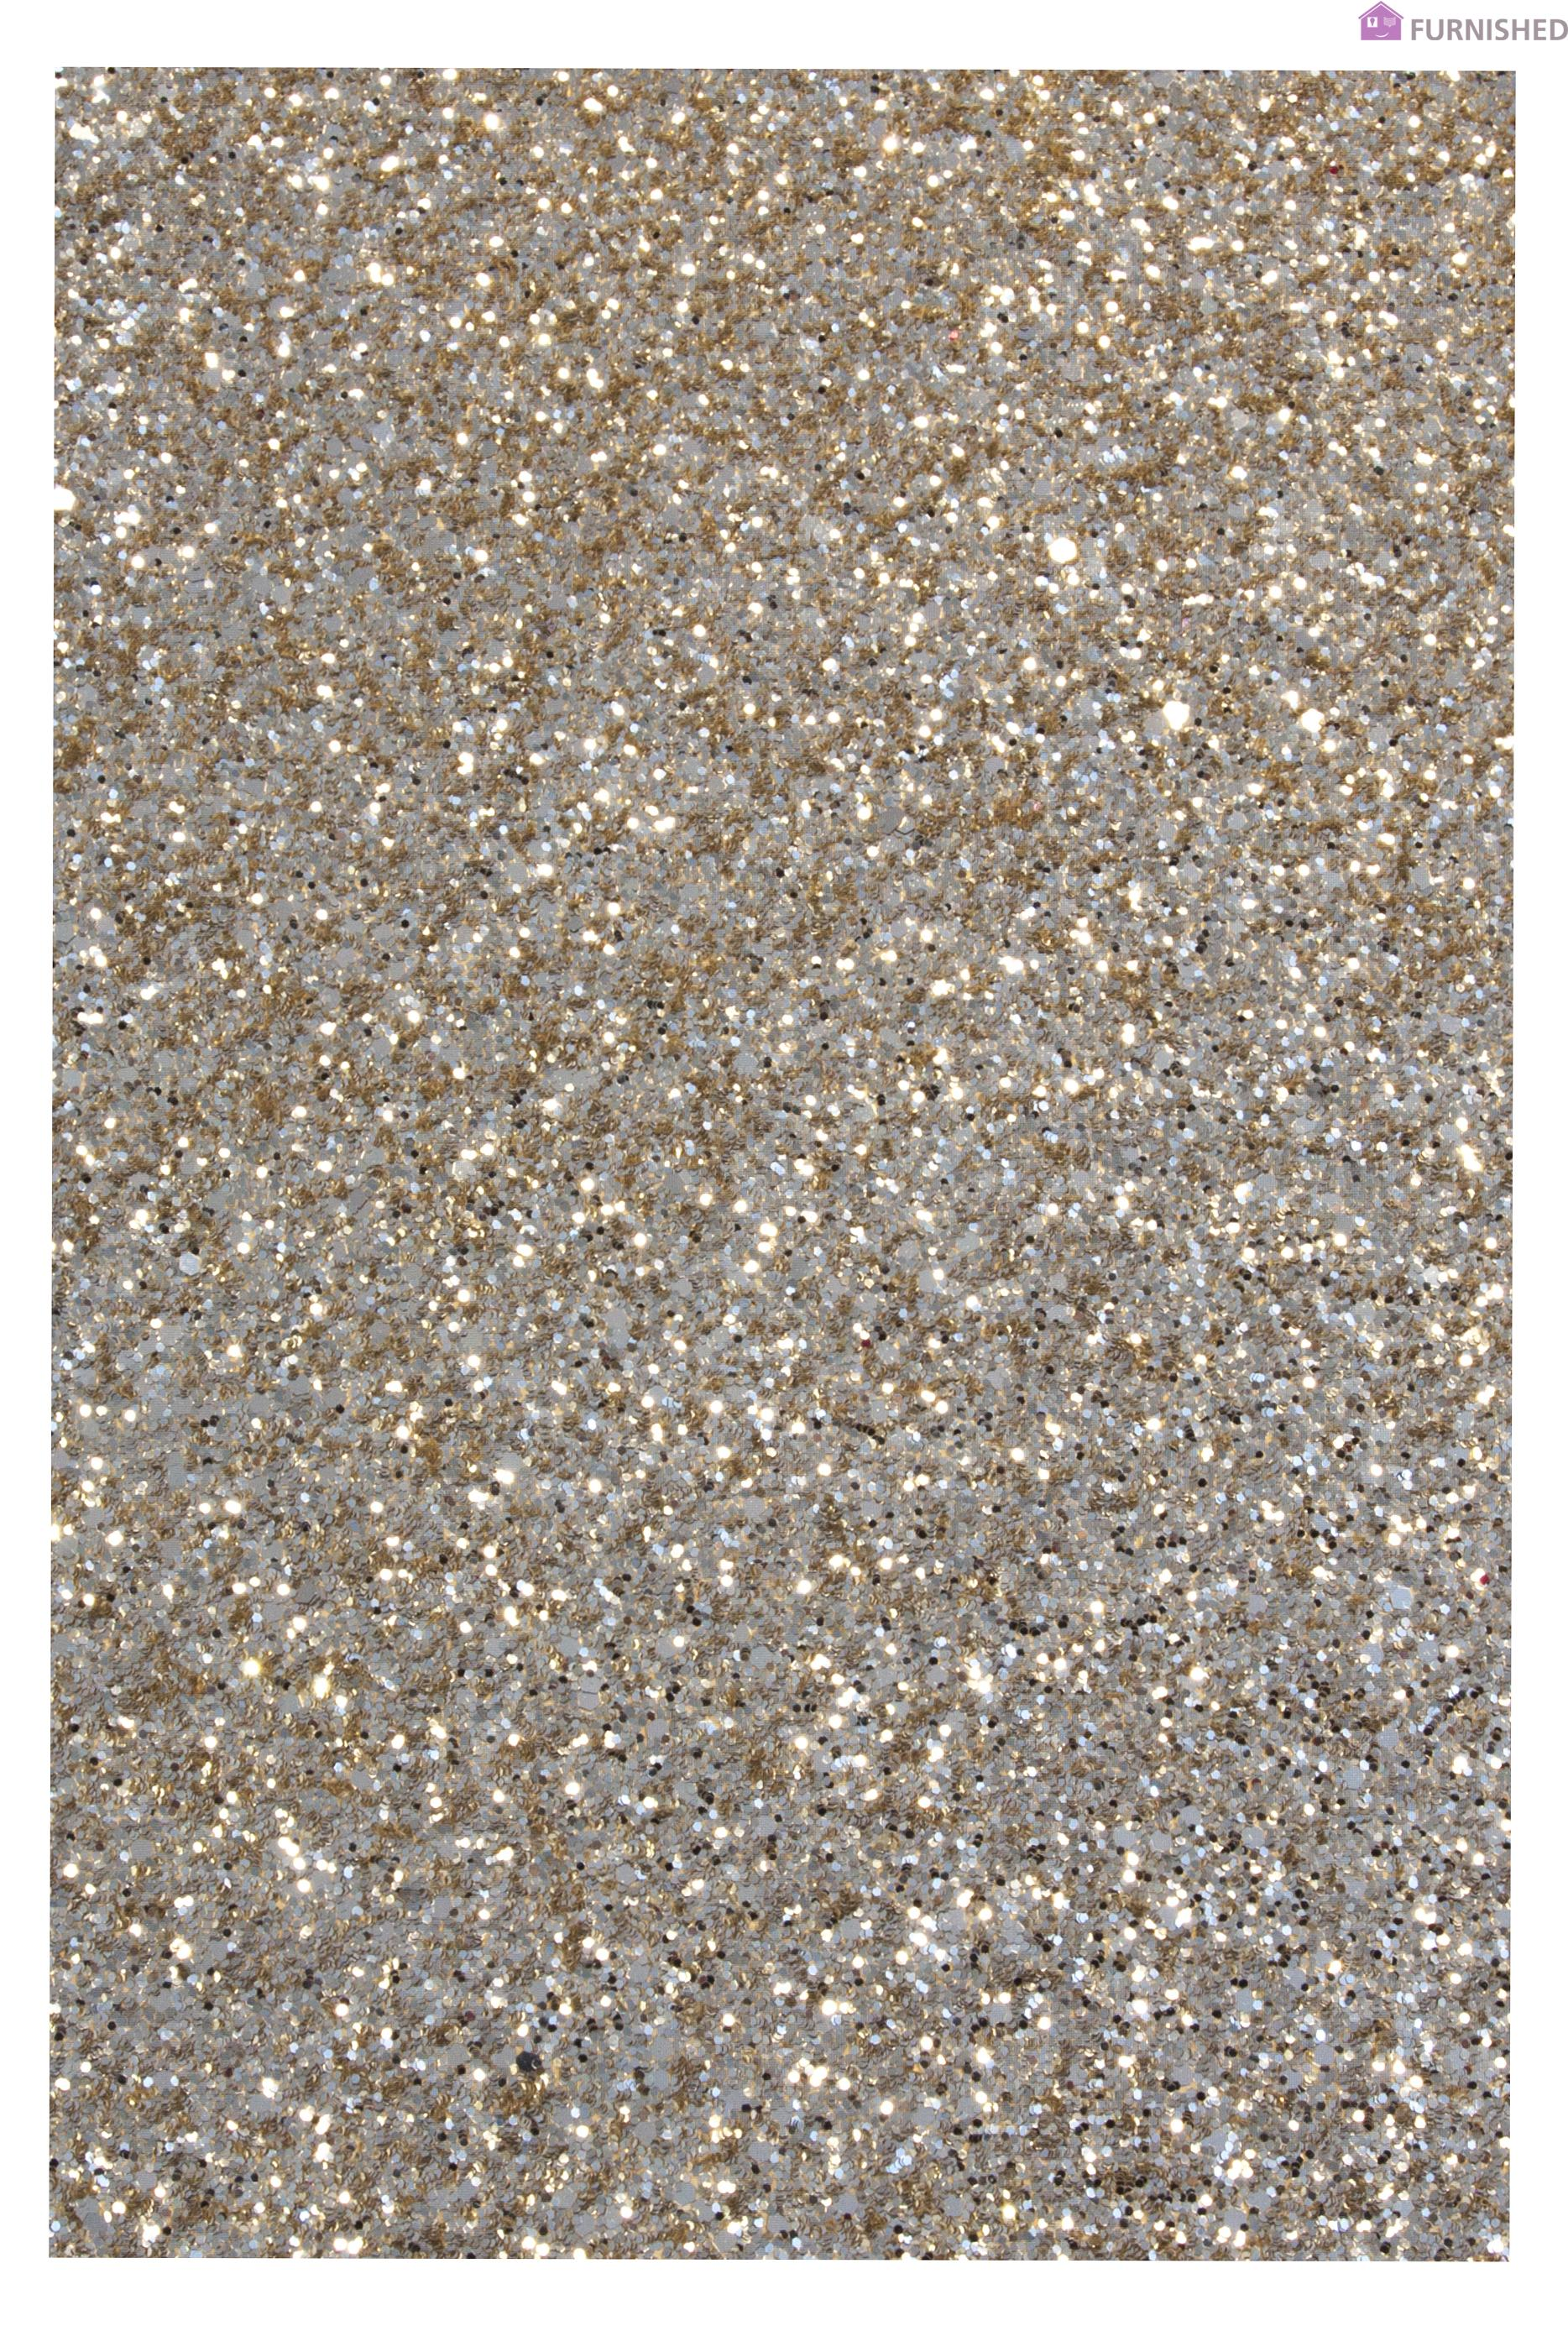 Fabric Wall Trim : Chunky glitter fabric faux leather wall trim bling card